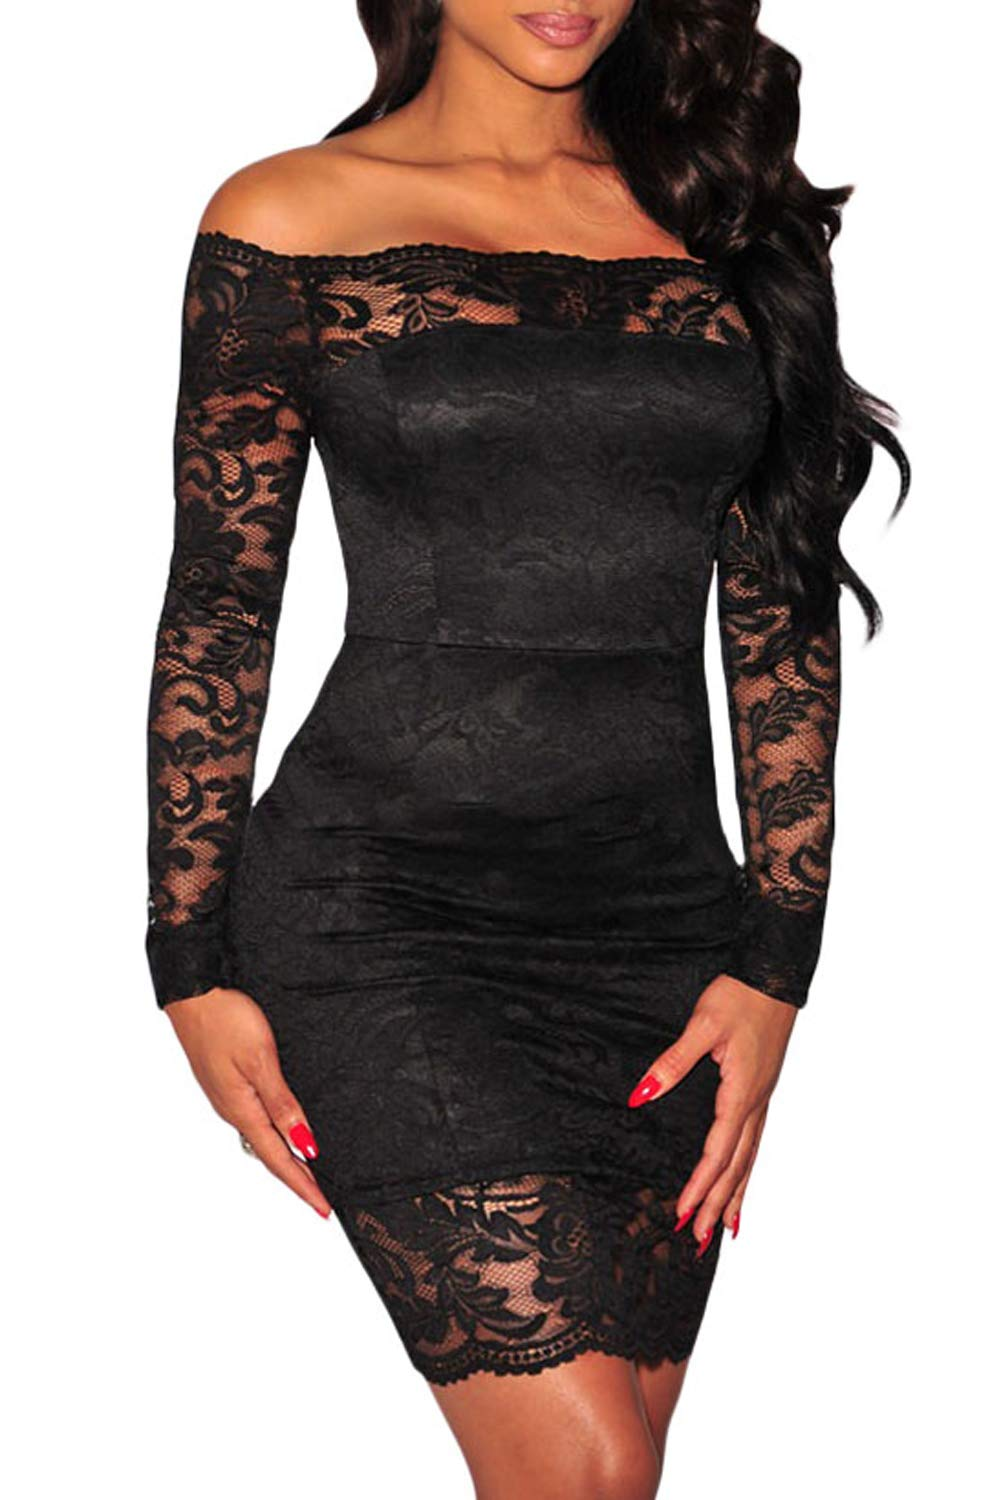 Party Dresses - Womens Sexy Criss Cross Off Shoulder Bodycon Party Club Midi Dress